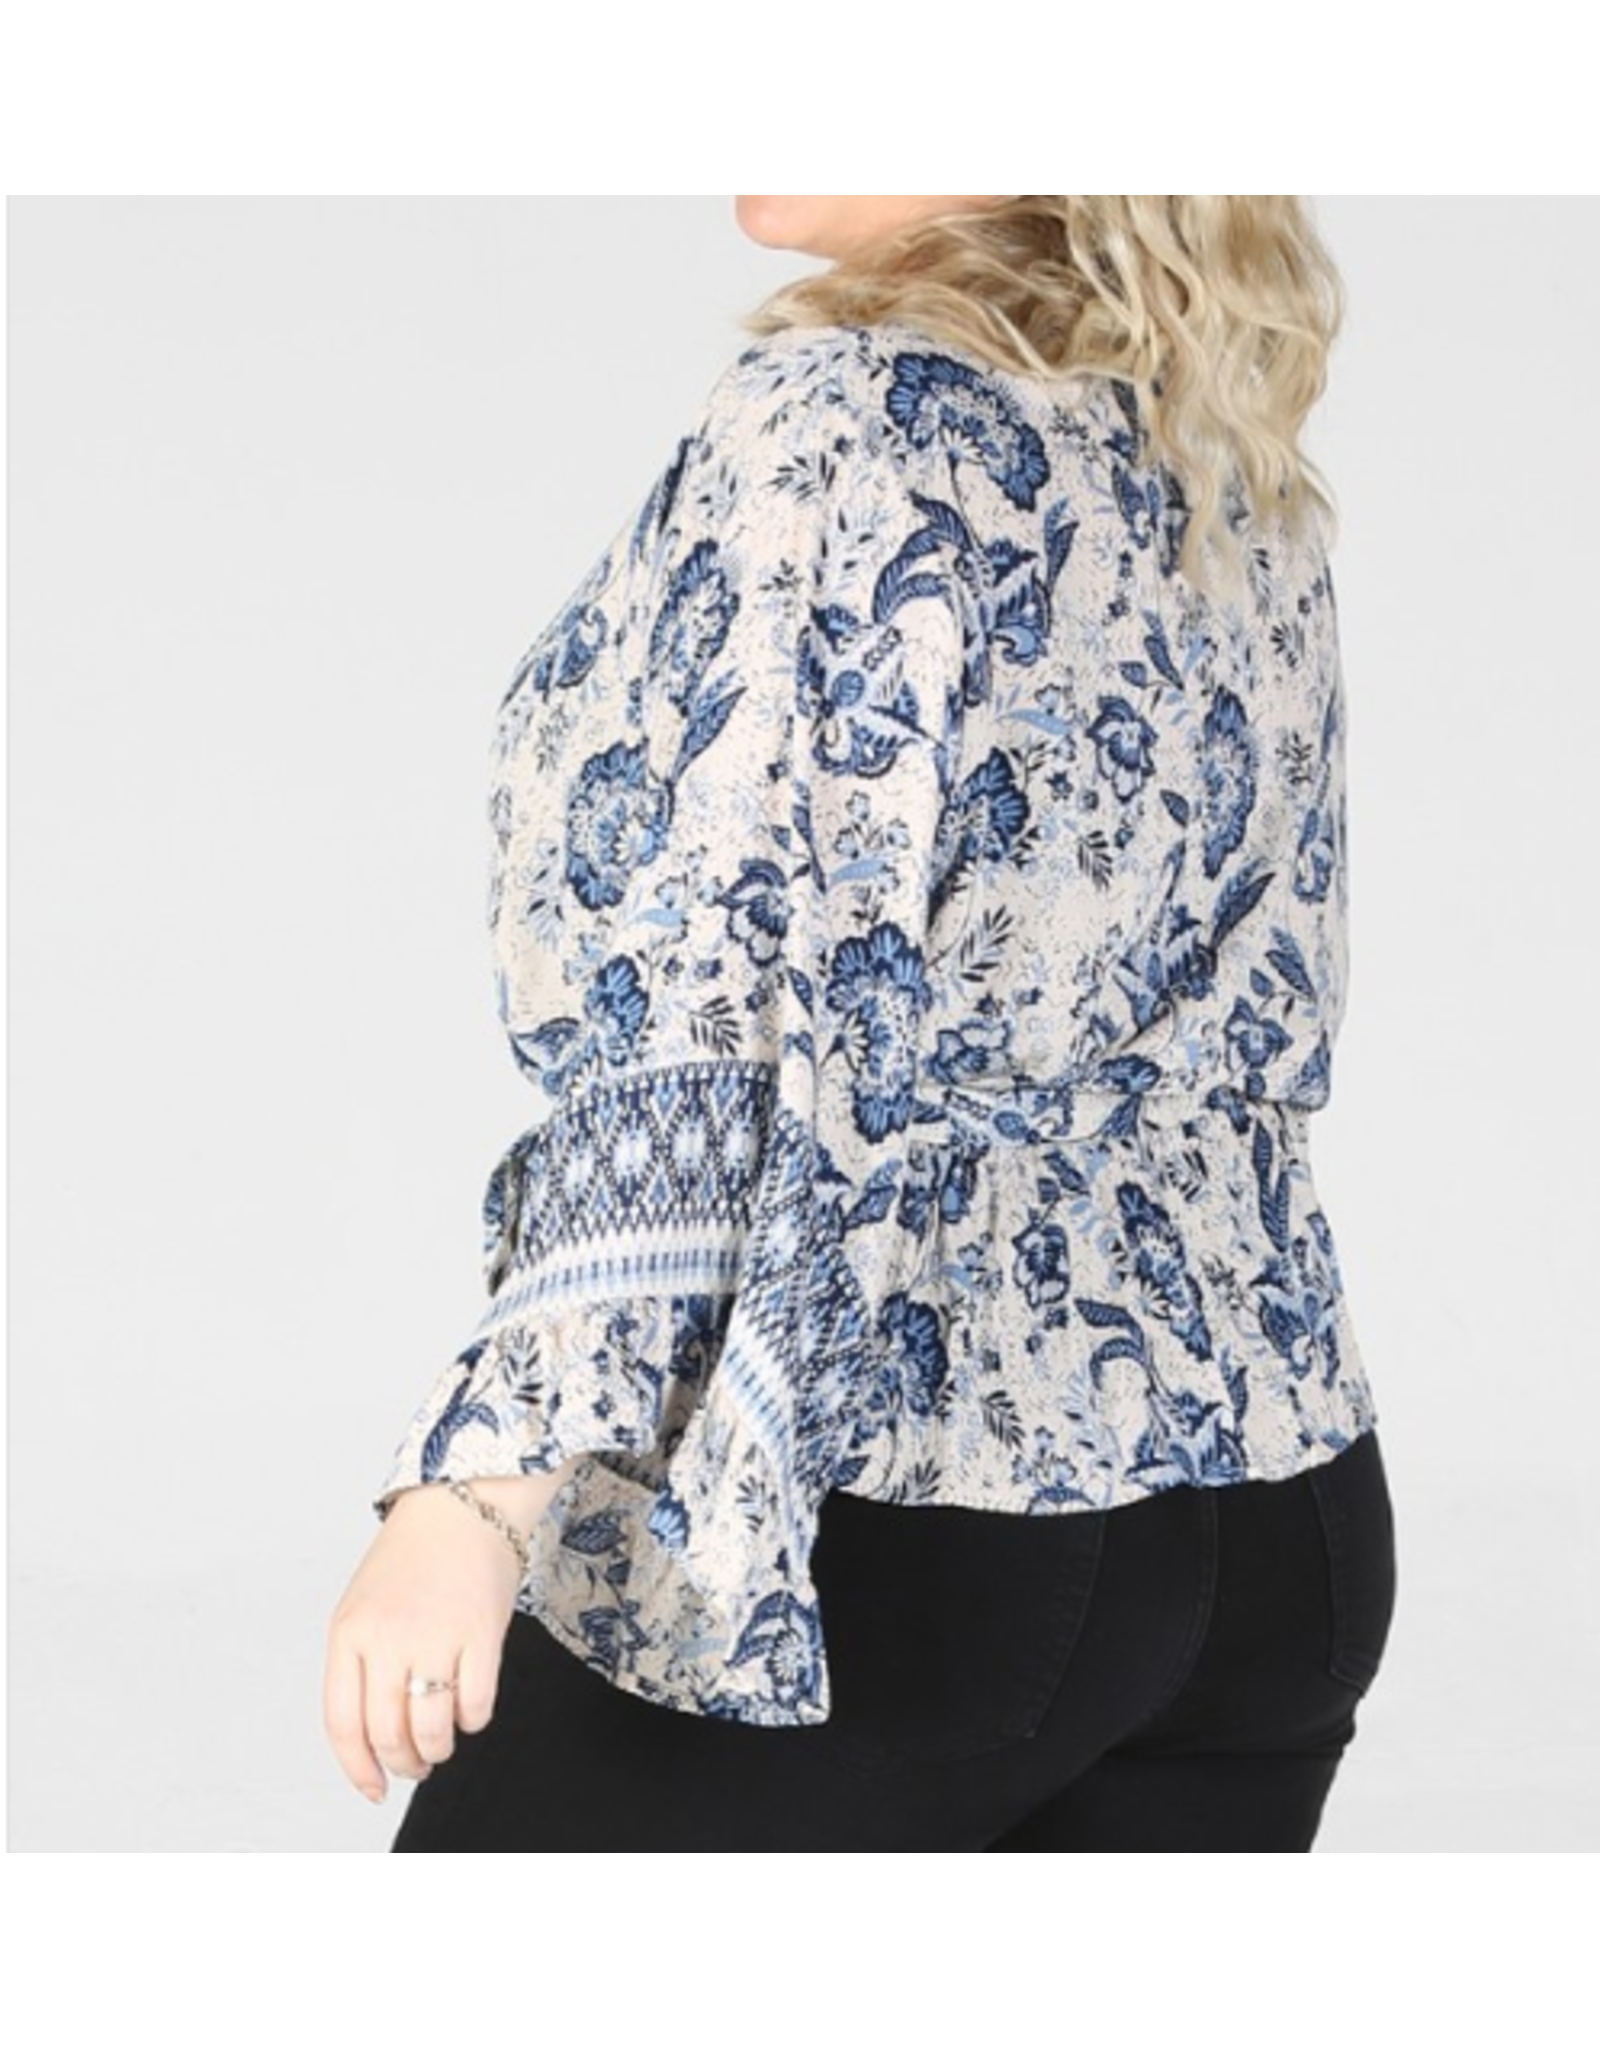 IVORY NAVY PRINTED VNECK ANGLED SLEEVE TOP WITH TIE WAIST